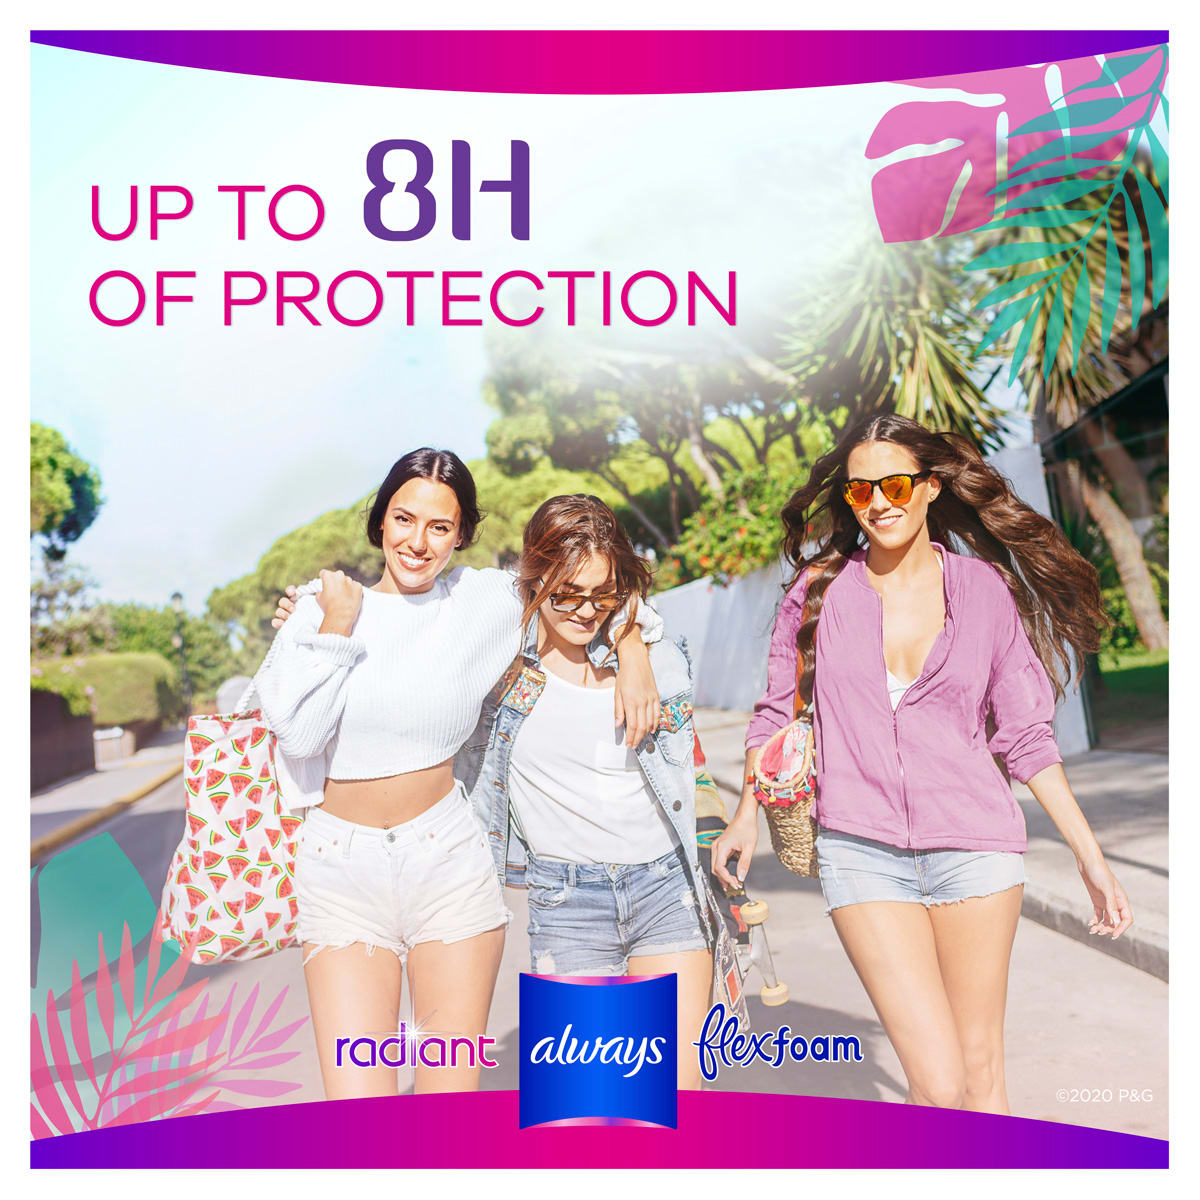 Up to 8 hours of protection